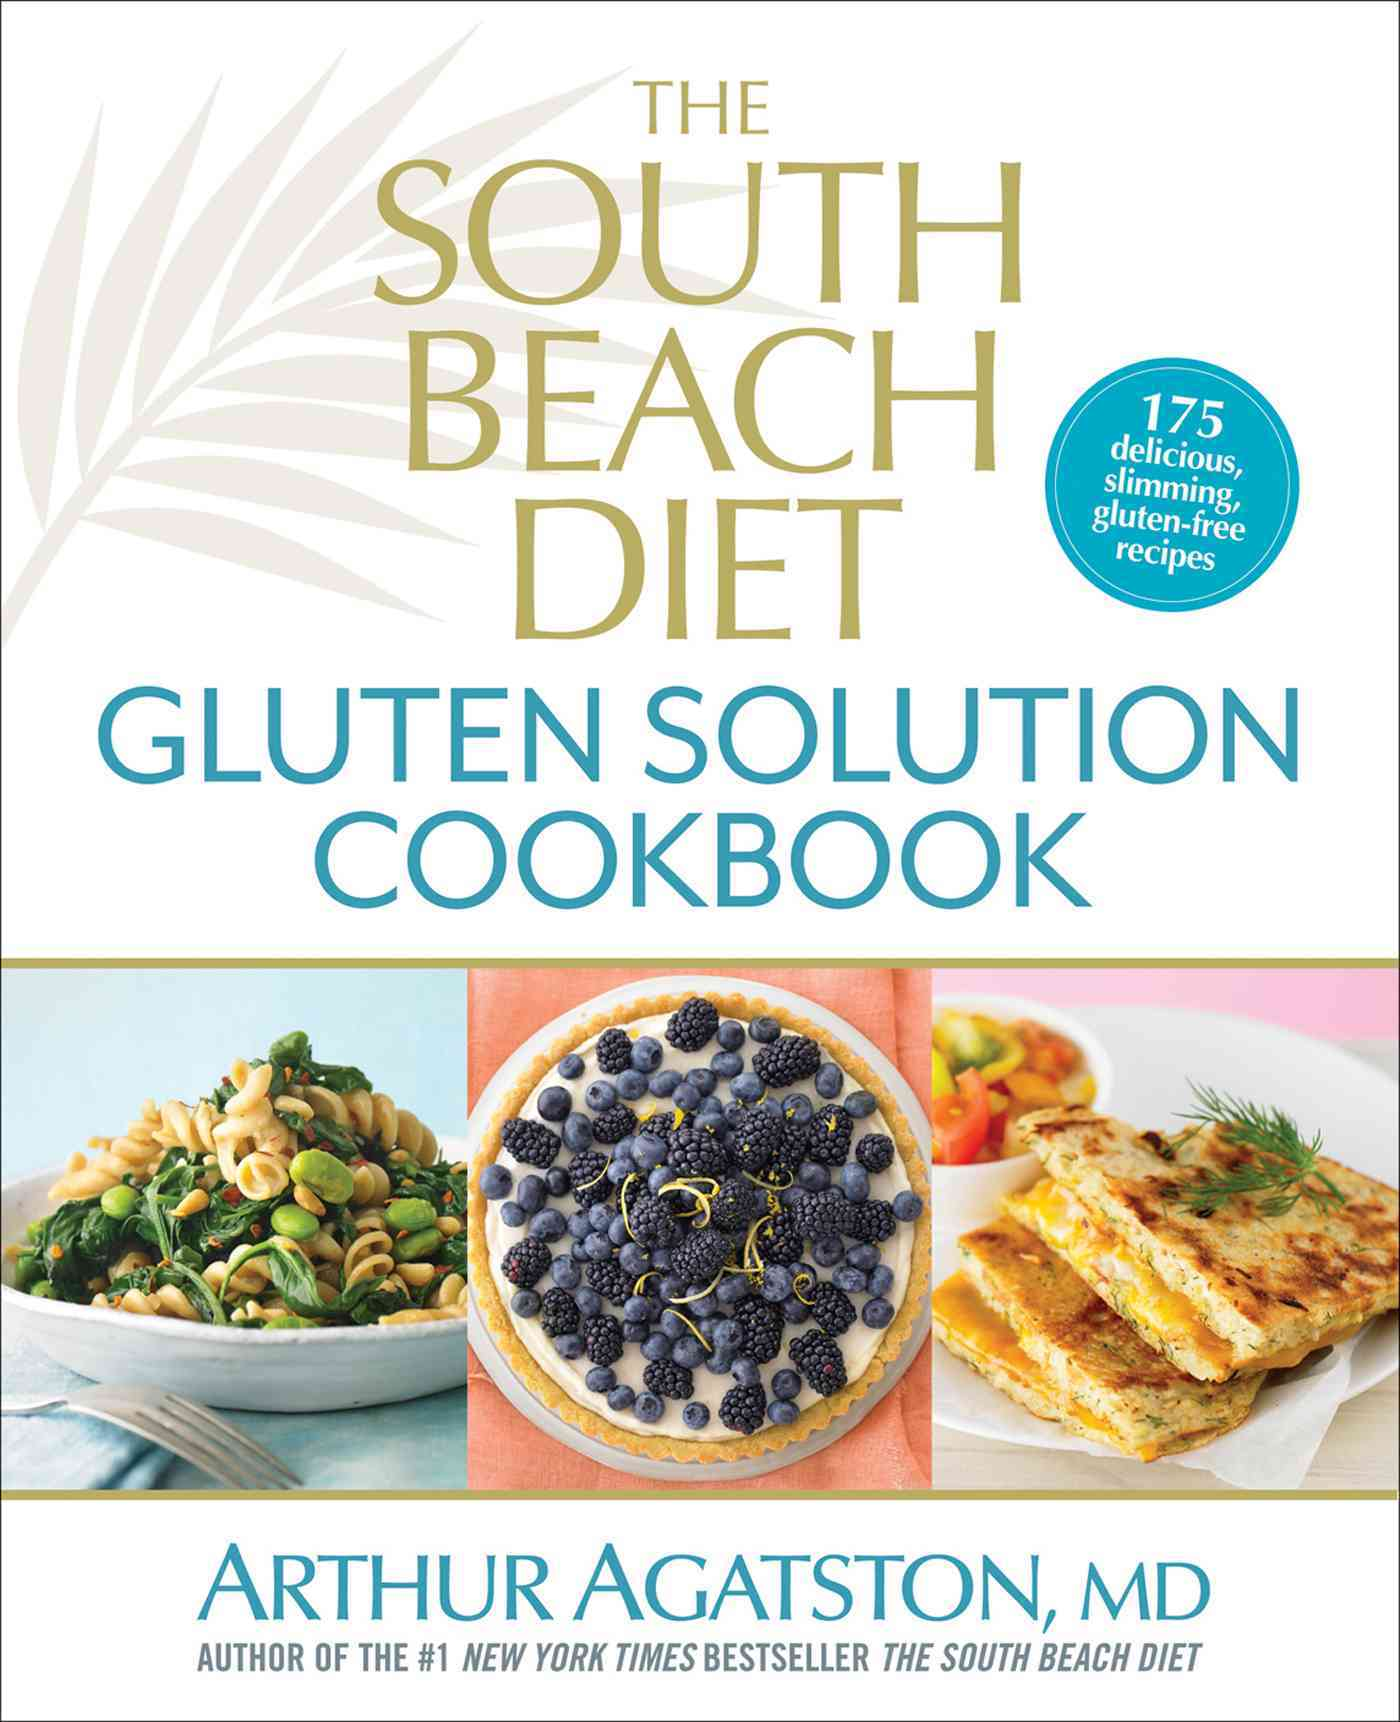 The South Beach Diet Gluten Solution Cookbook (Hardcover)